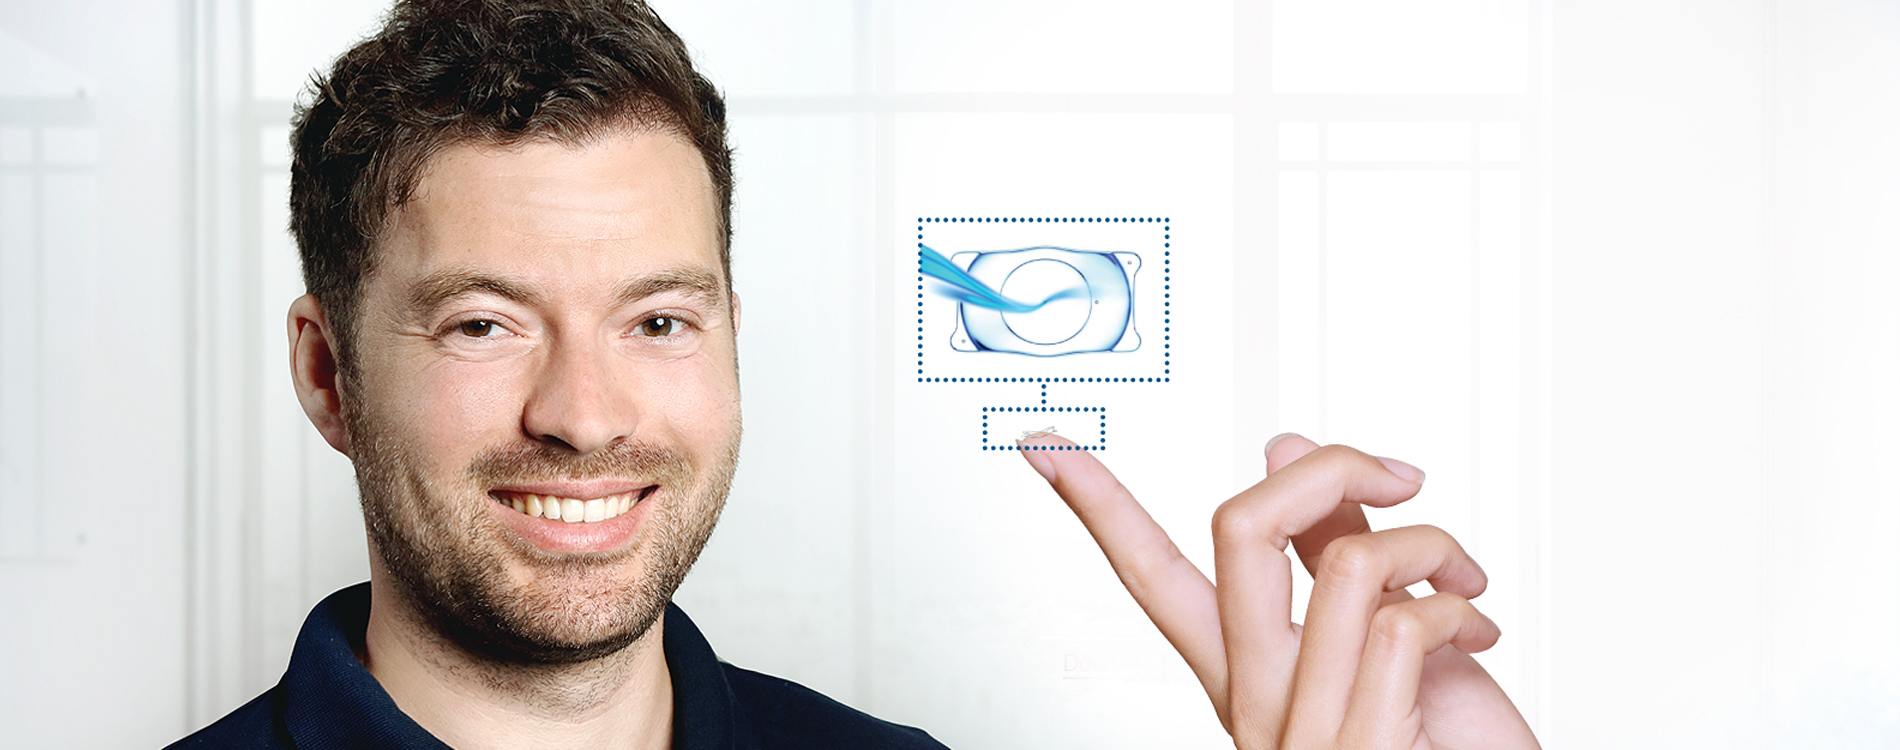 ICL – the Implantable Contact Lens at Test Winner EuroEyes